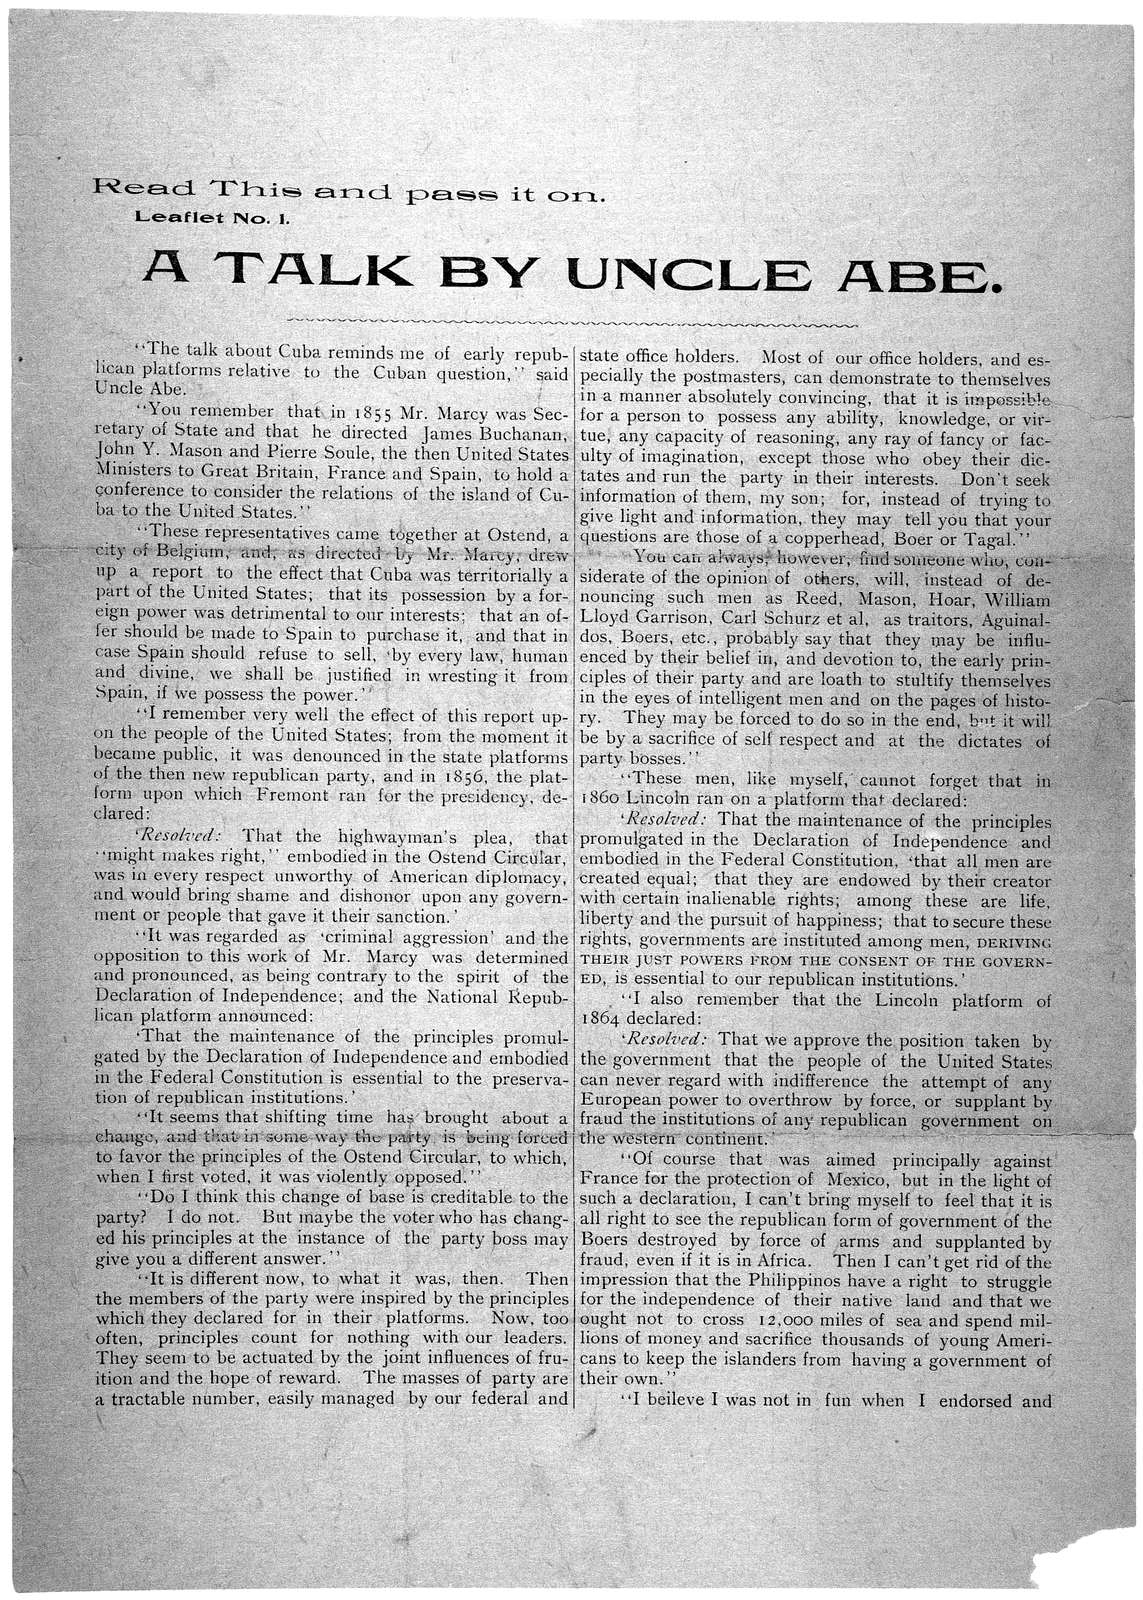 Read this and pass it on. Leaflet No. 1. A talk by Uncle Abe ... December 1, 1899.